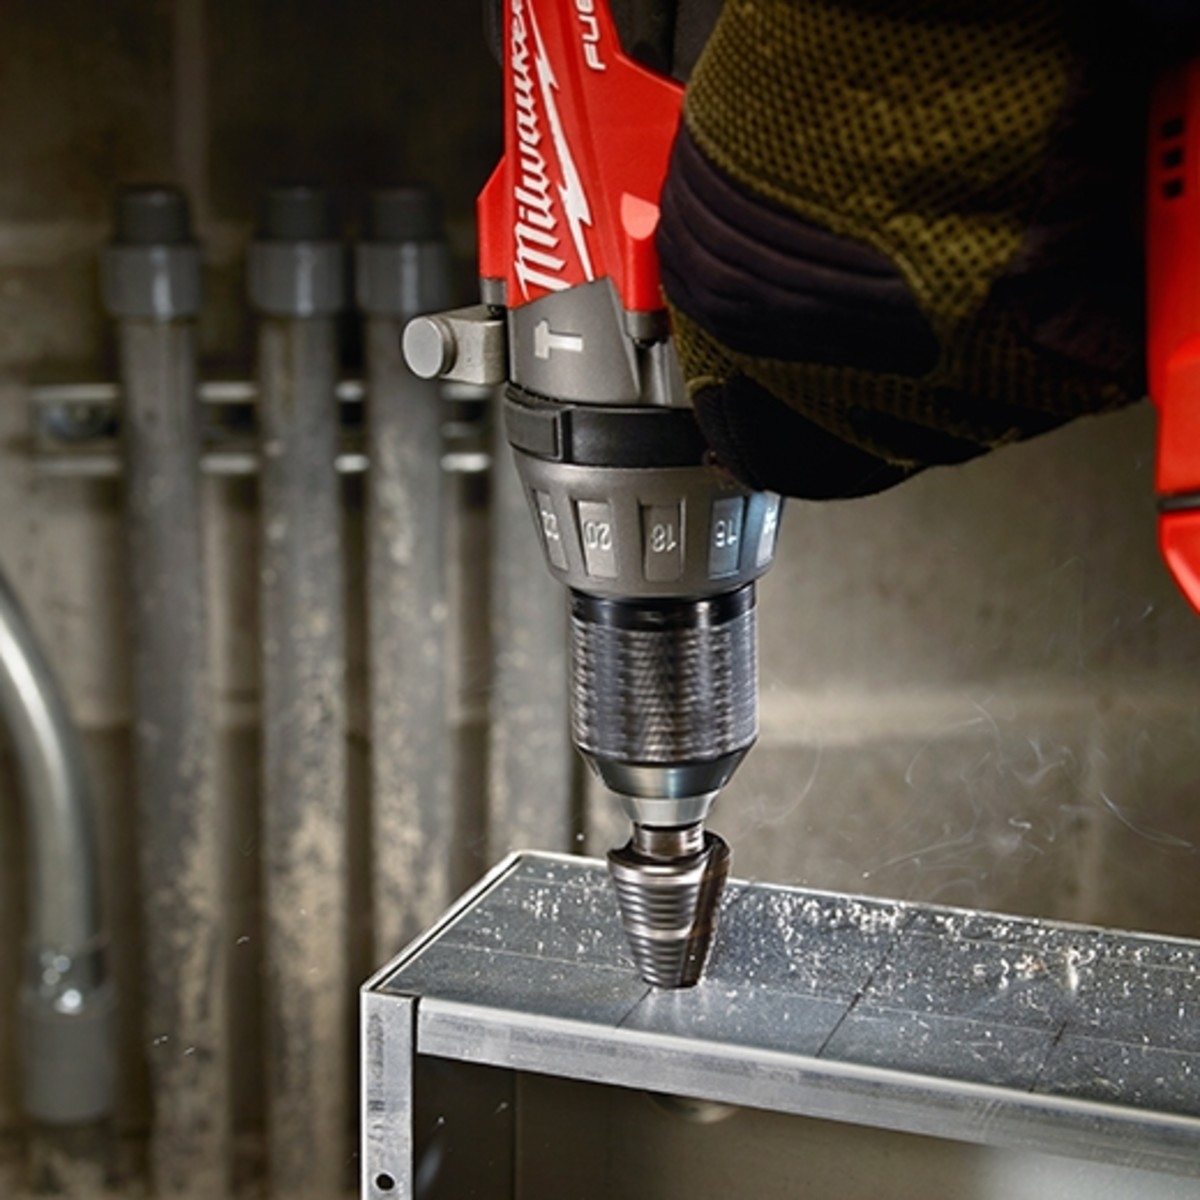 Step drill bit making large holes into a metal enclosure.